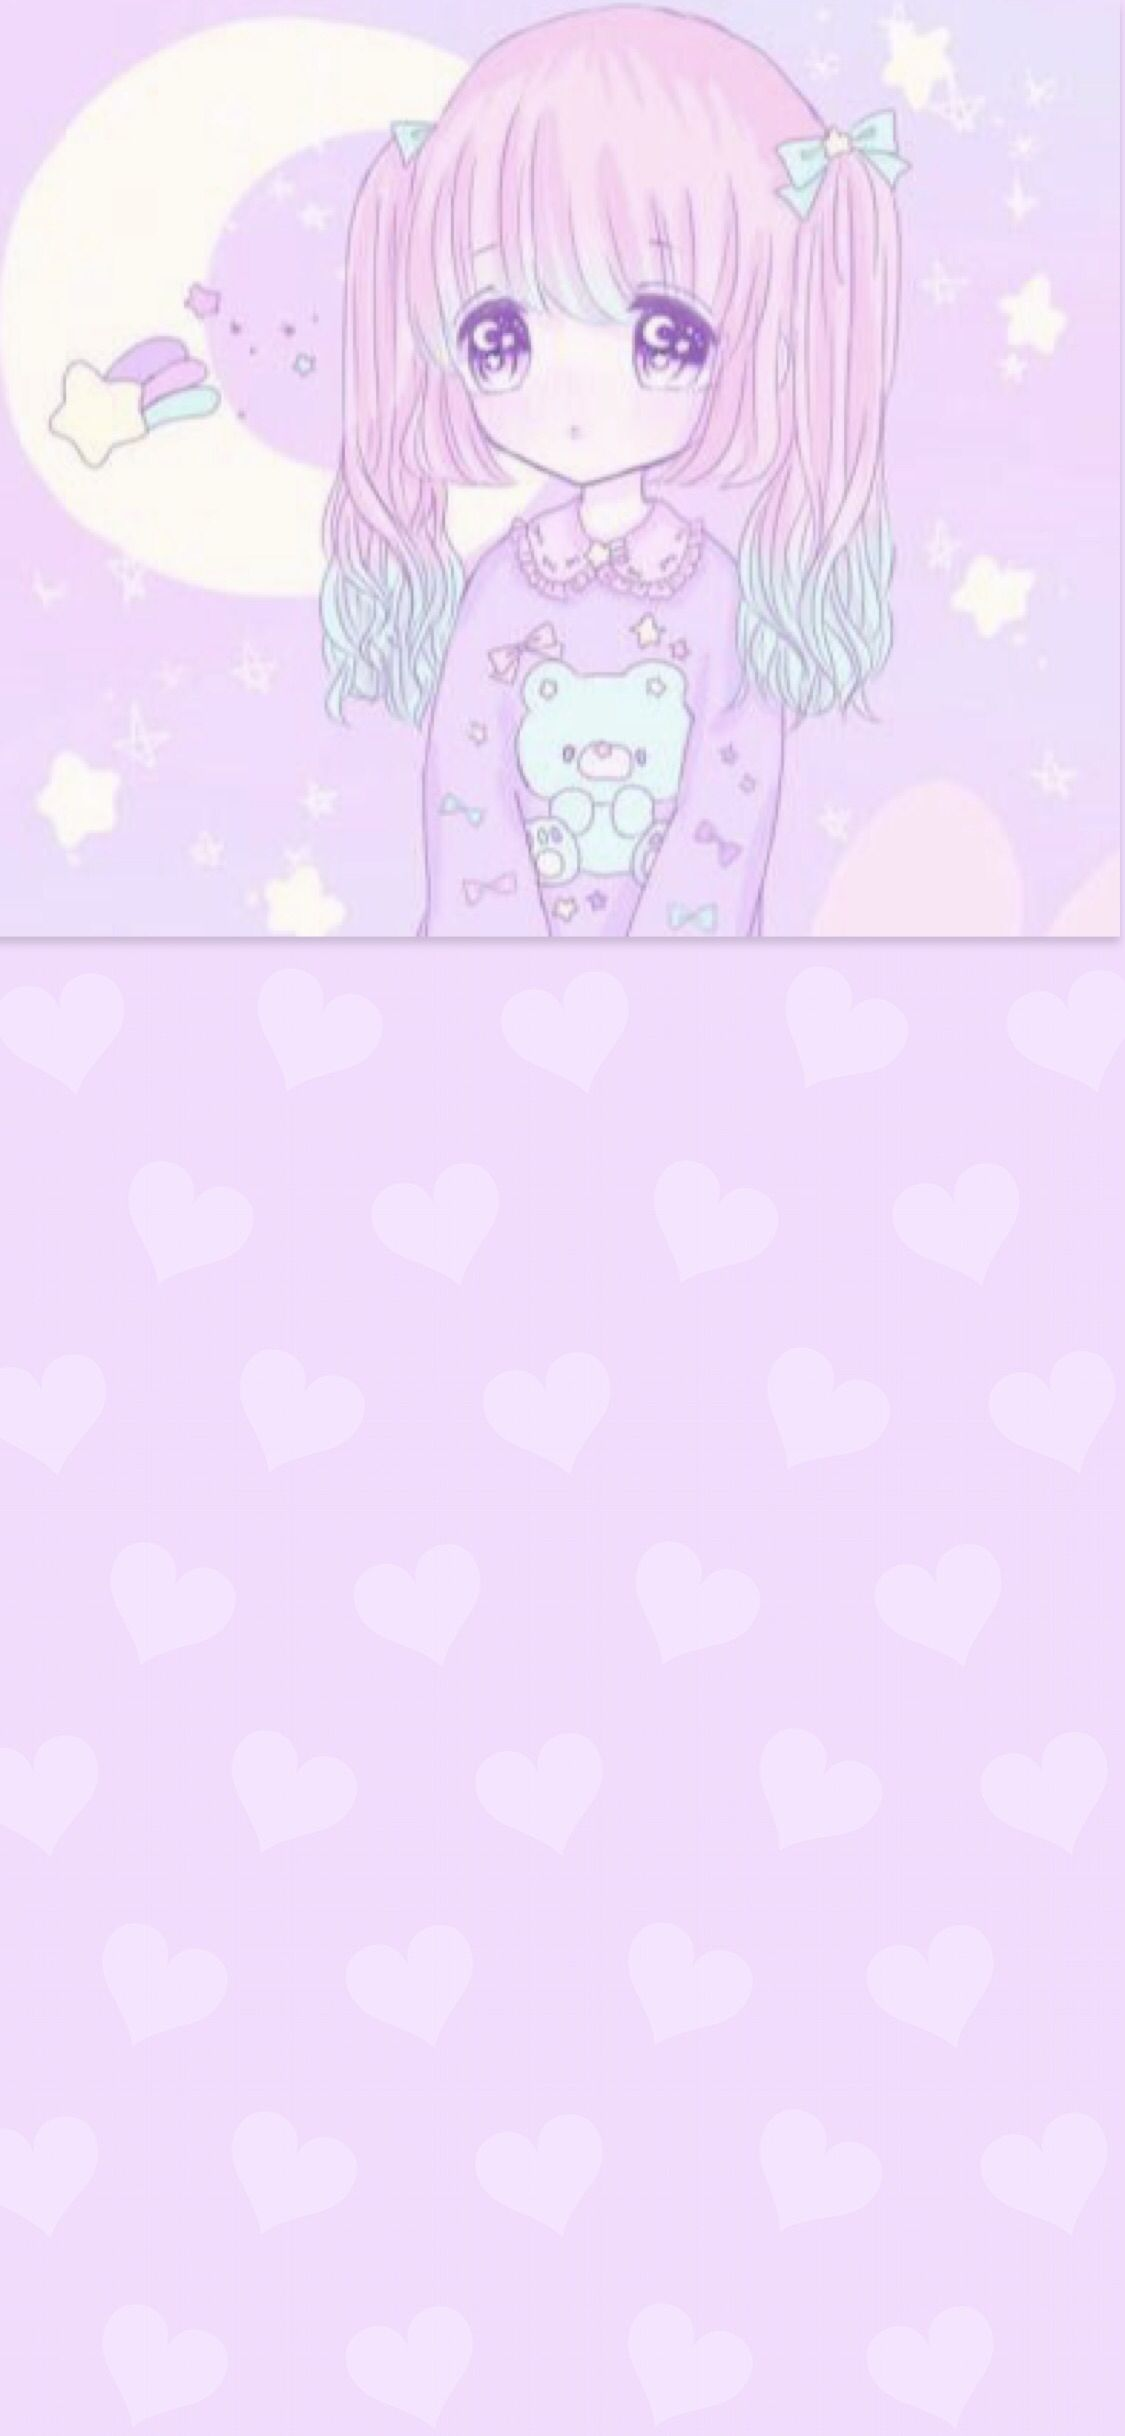 Wallpaper Background Iphone Android Hd Pink Pastel Cute